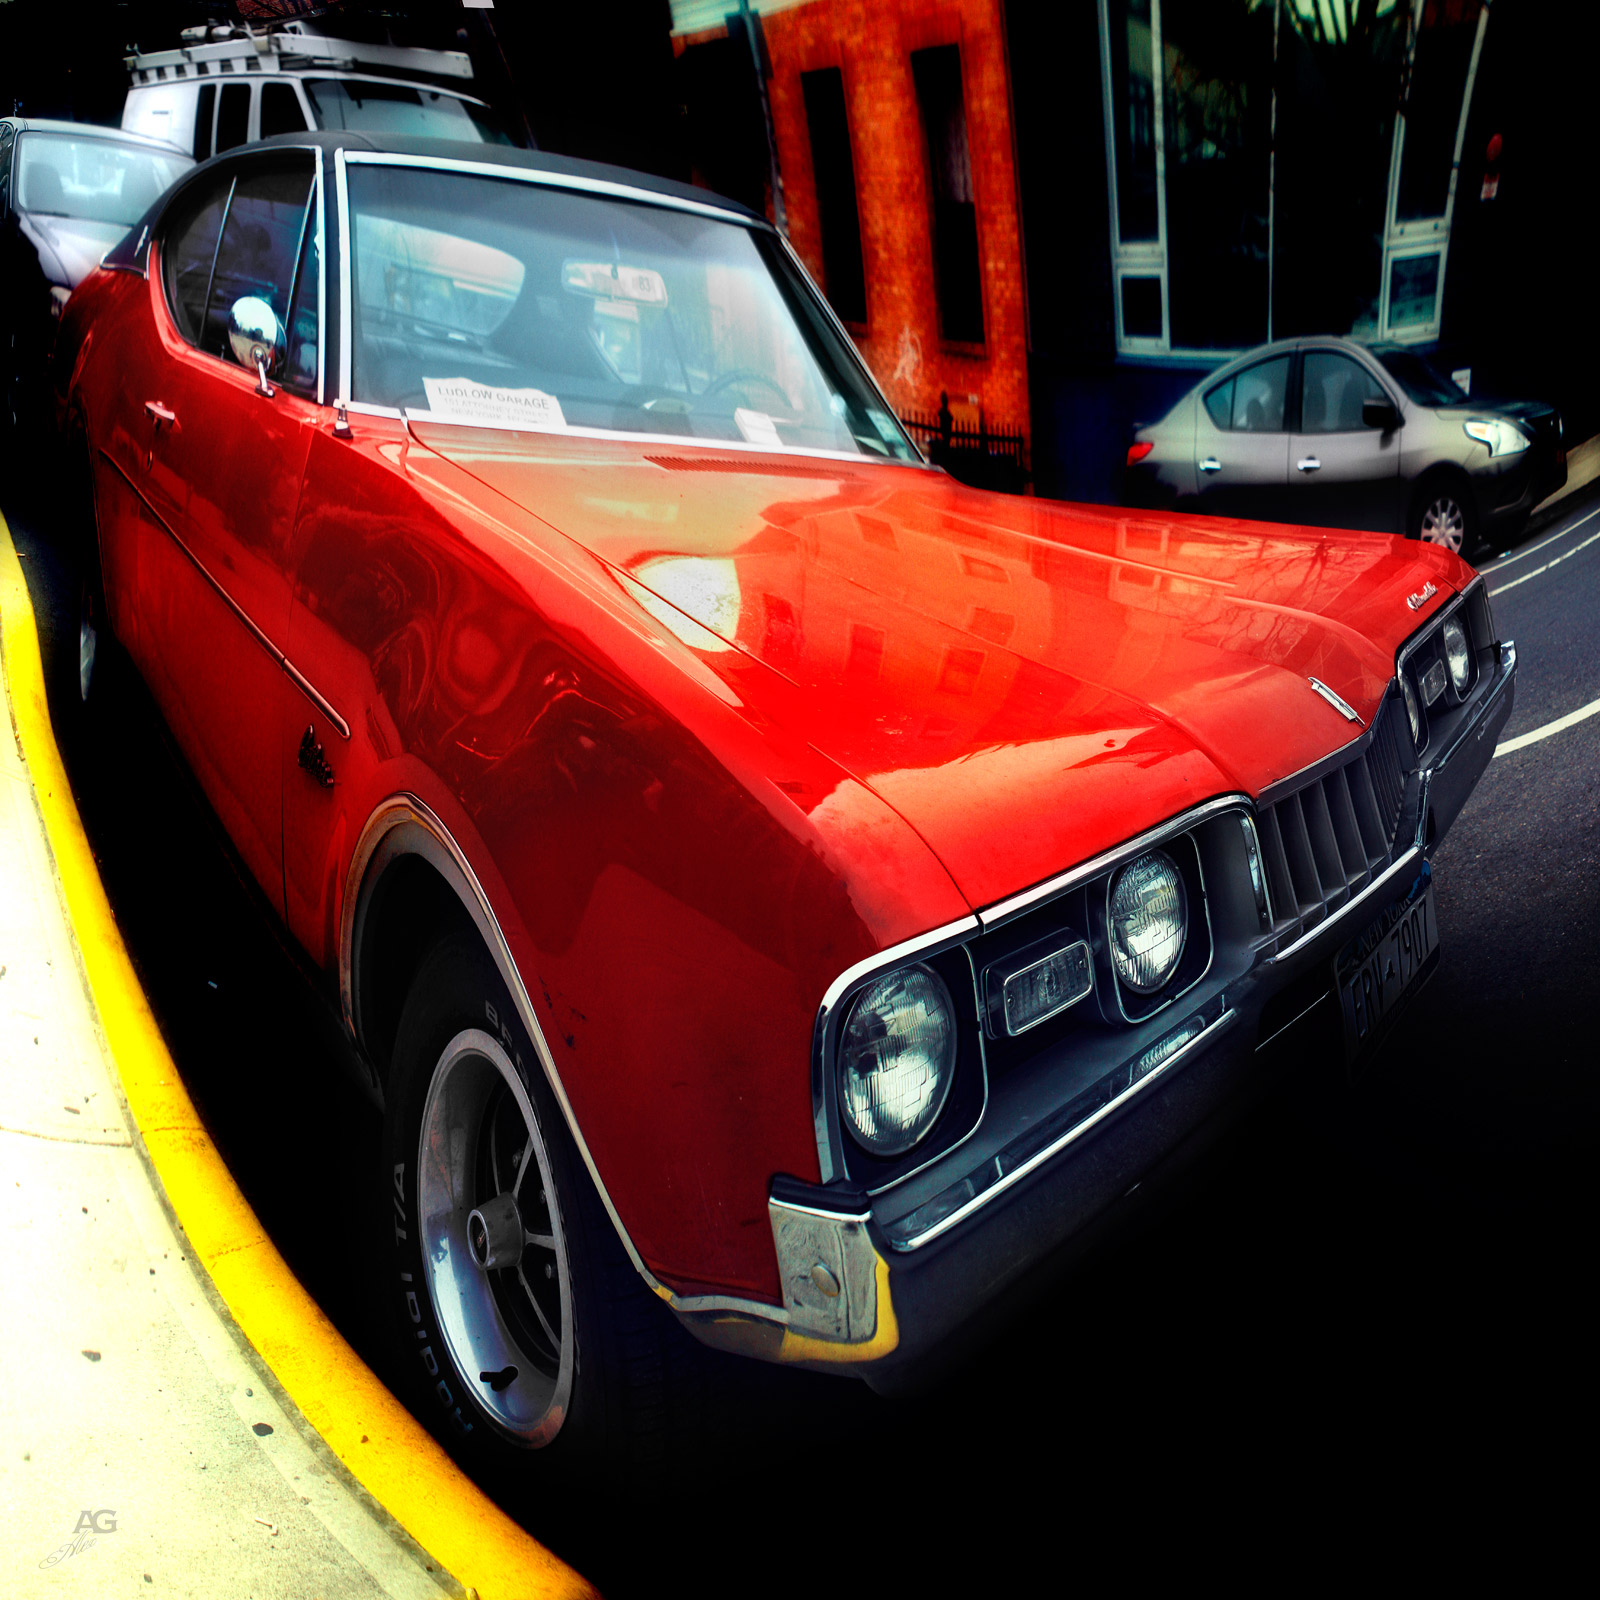 RedMuscleCarInWilliamsburg_warped_1600